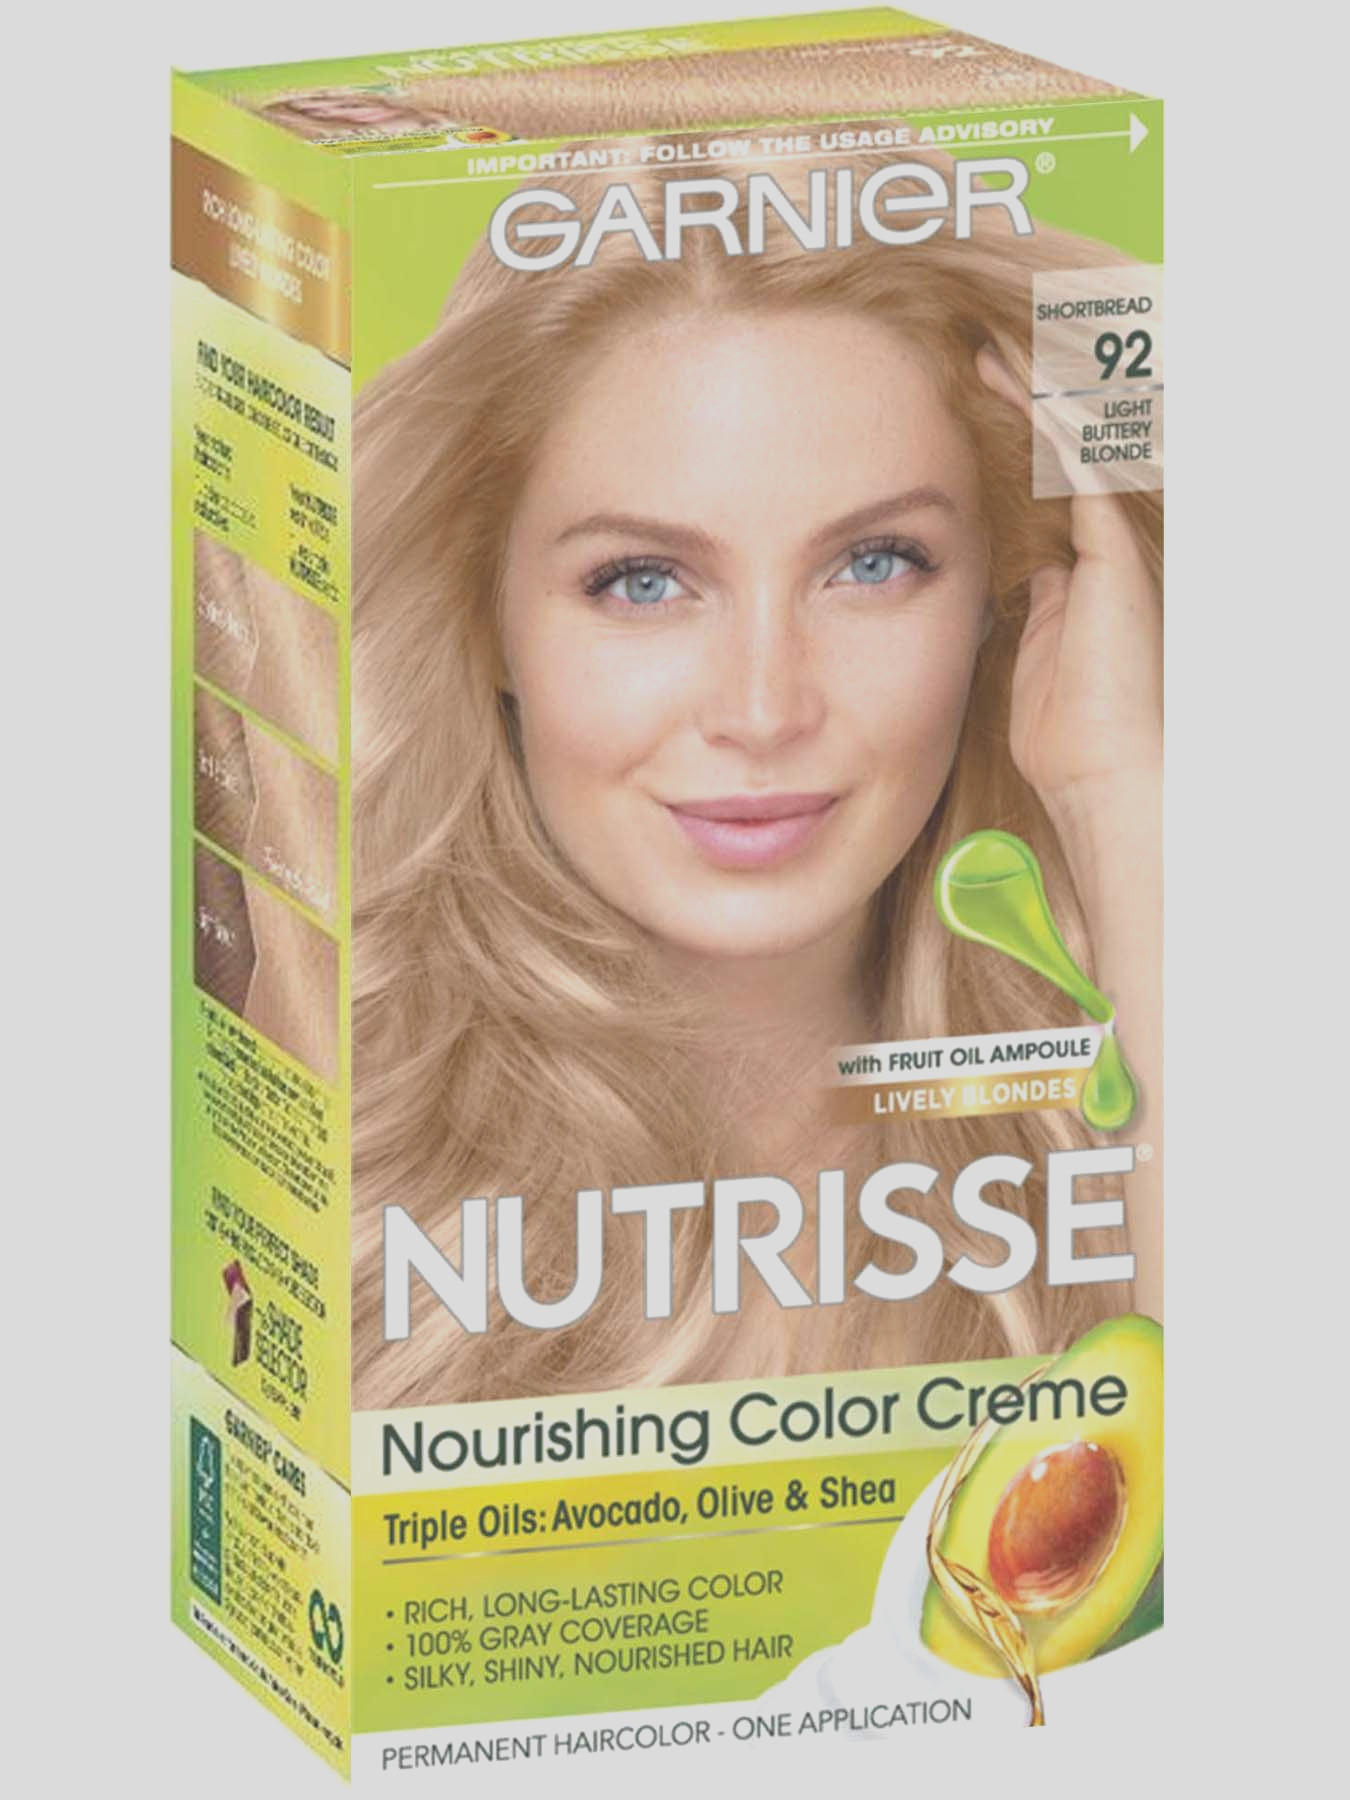 nourishing color creme 92 light buttery blonde